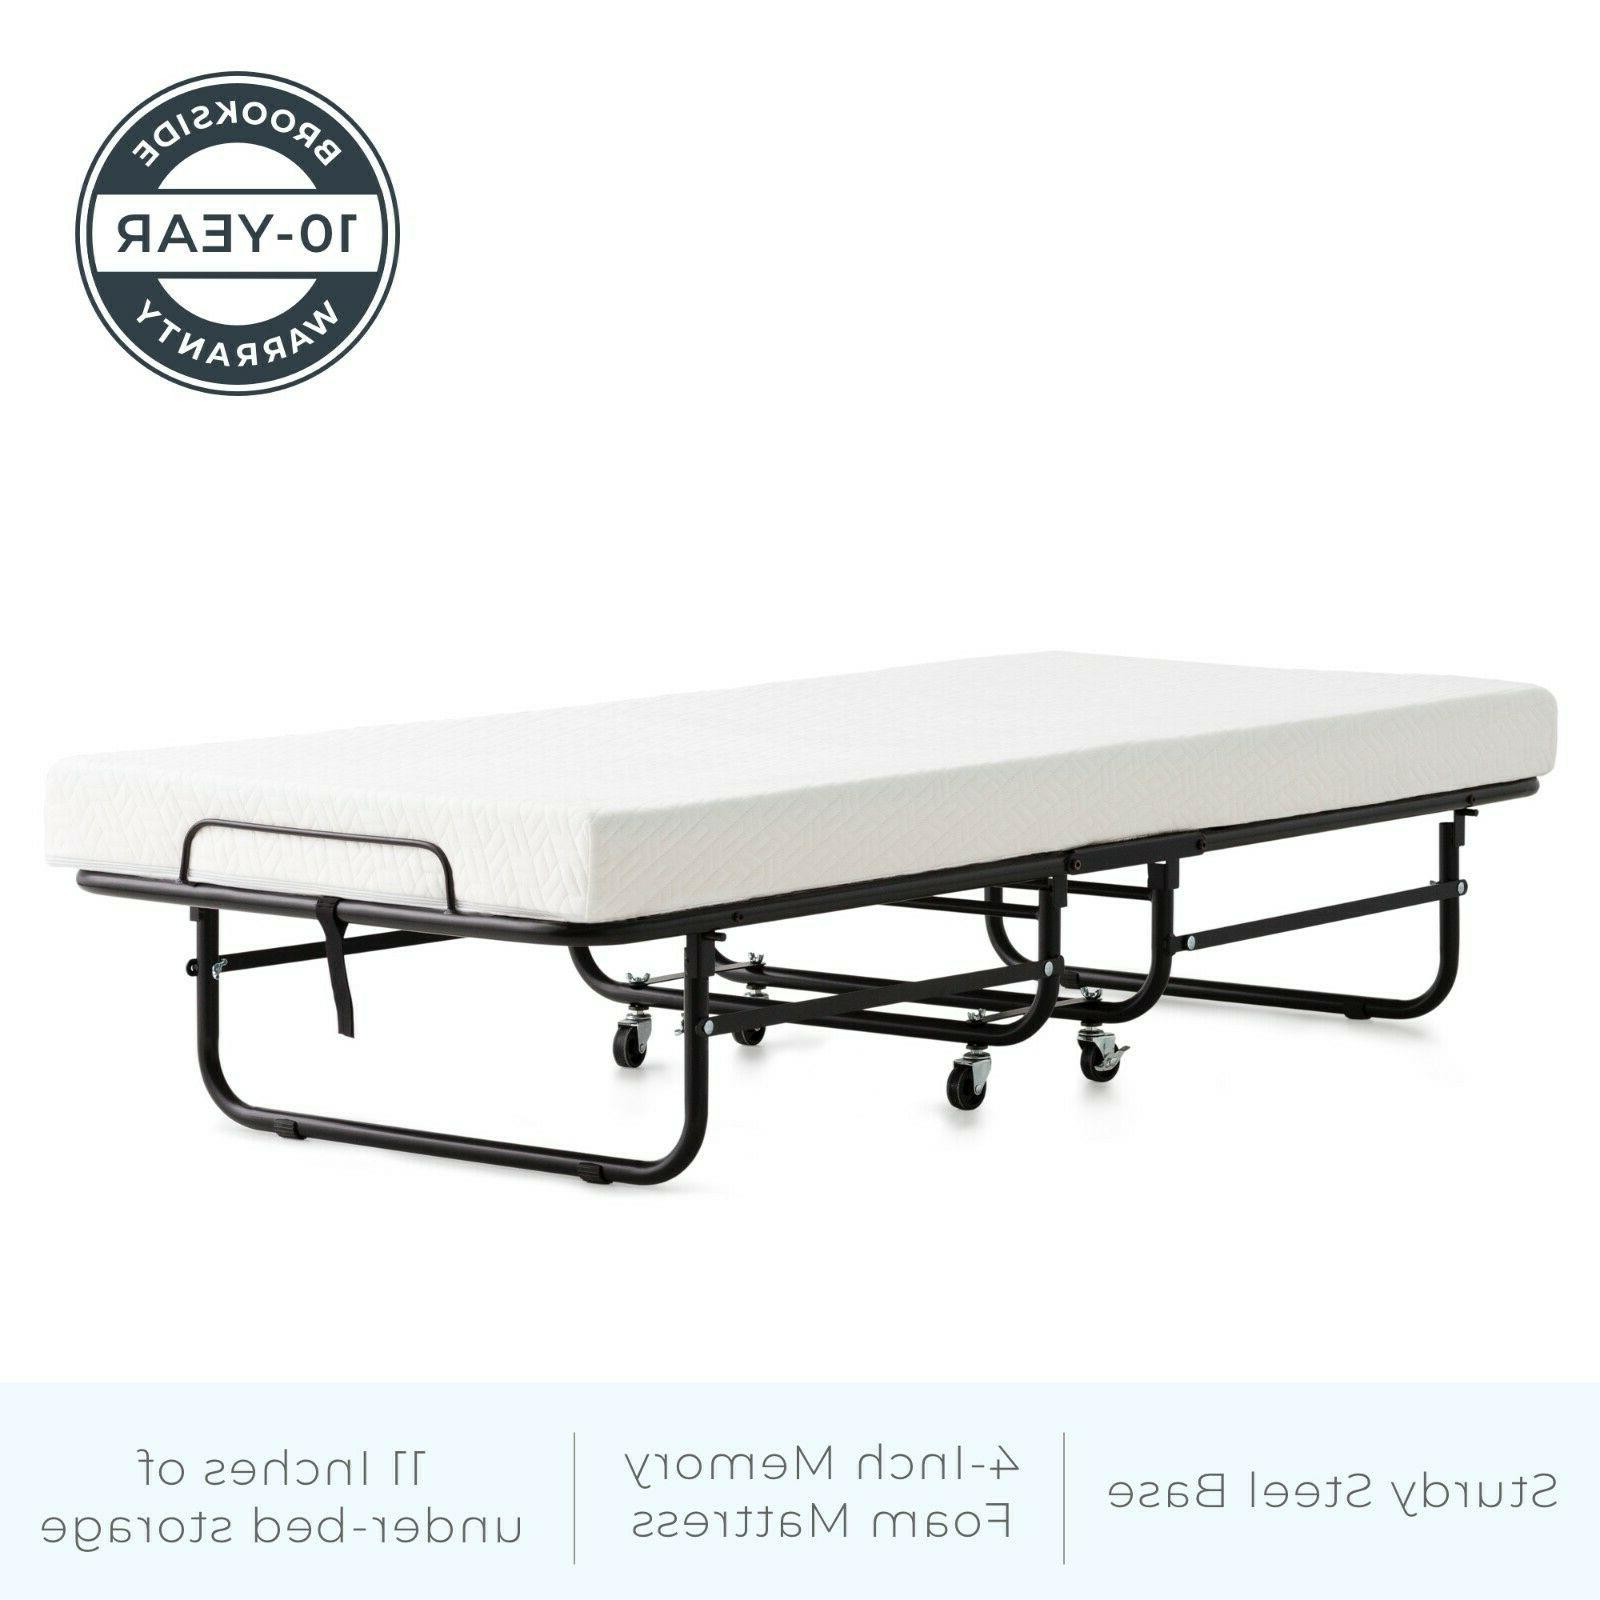 Brookside Cot, XL sizes